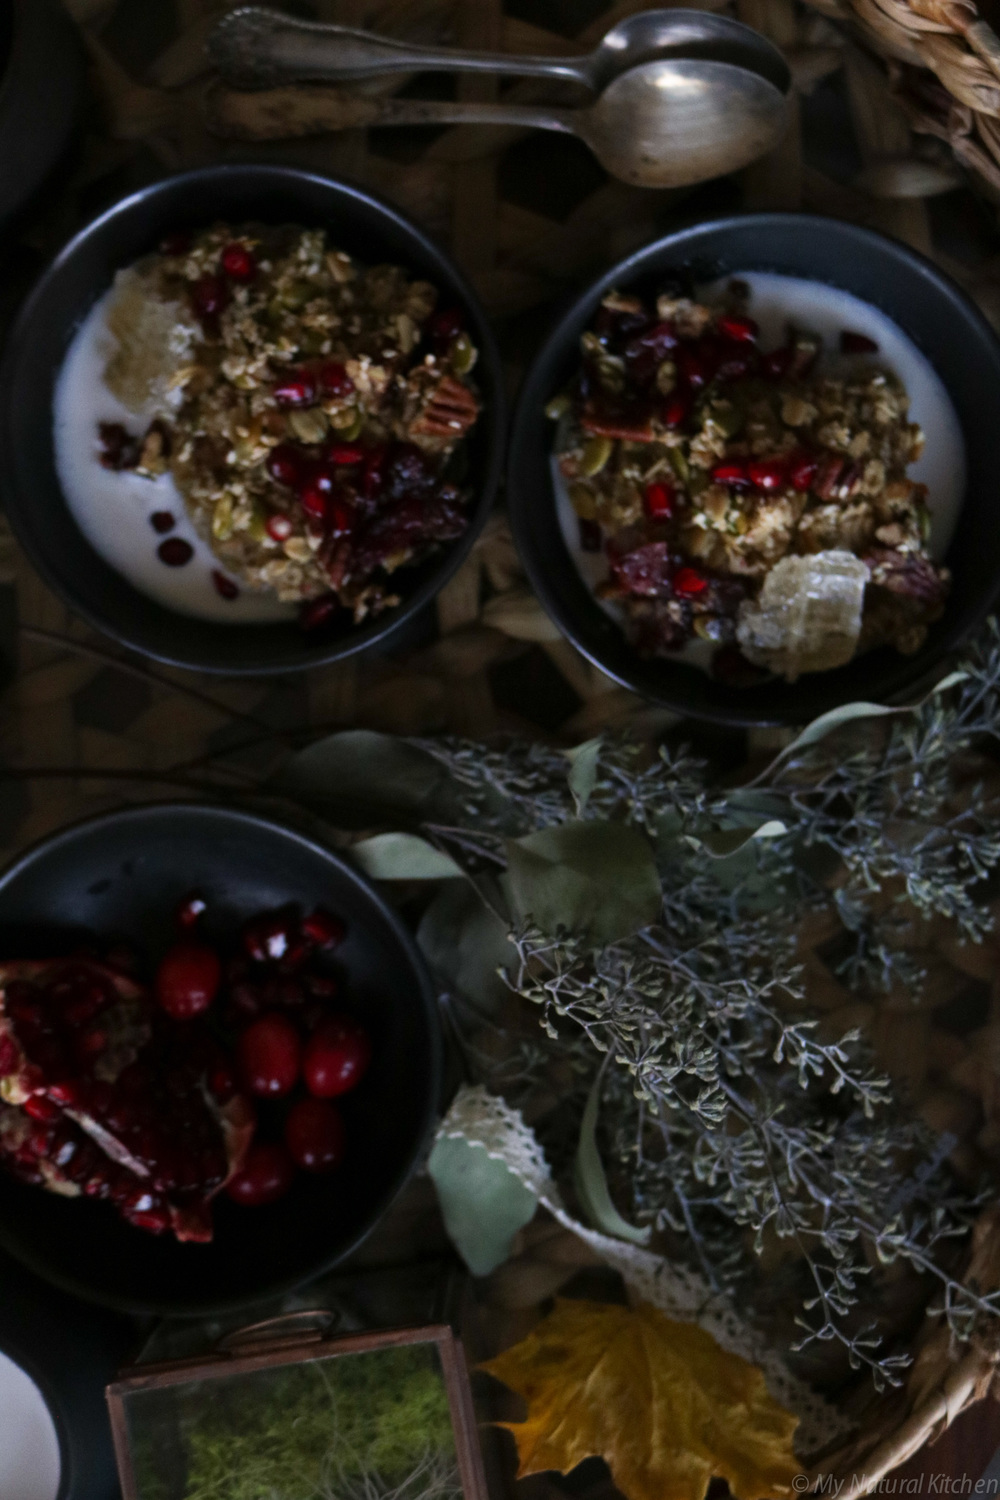 spiced cranberry baked oatmeal + vanilla fig almond milk from my natural kitchen (gluten free and vegan)